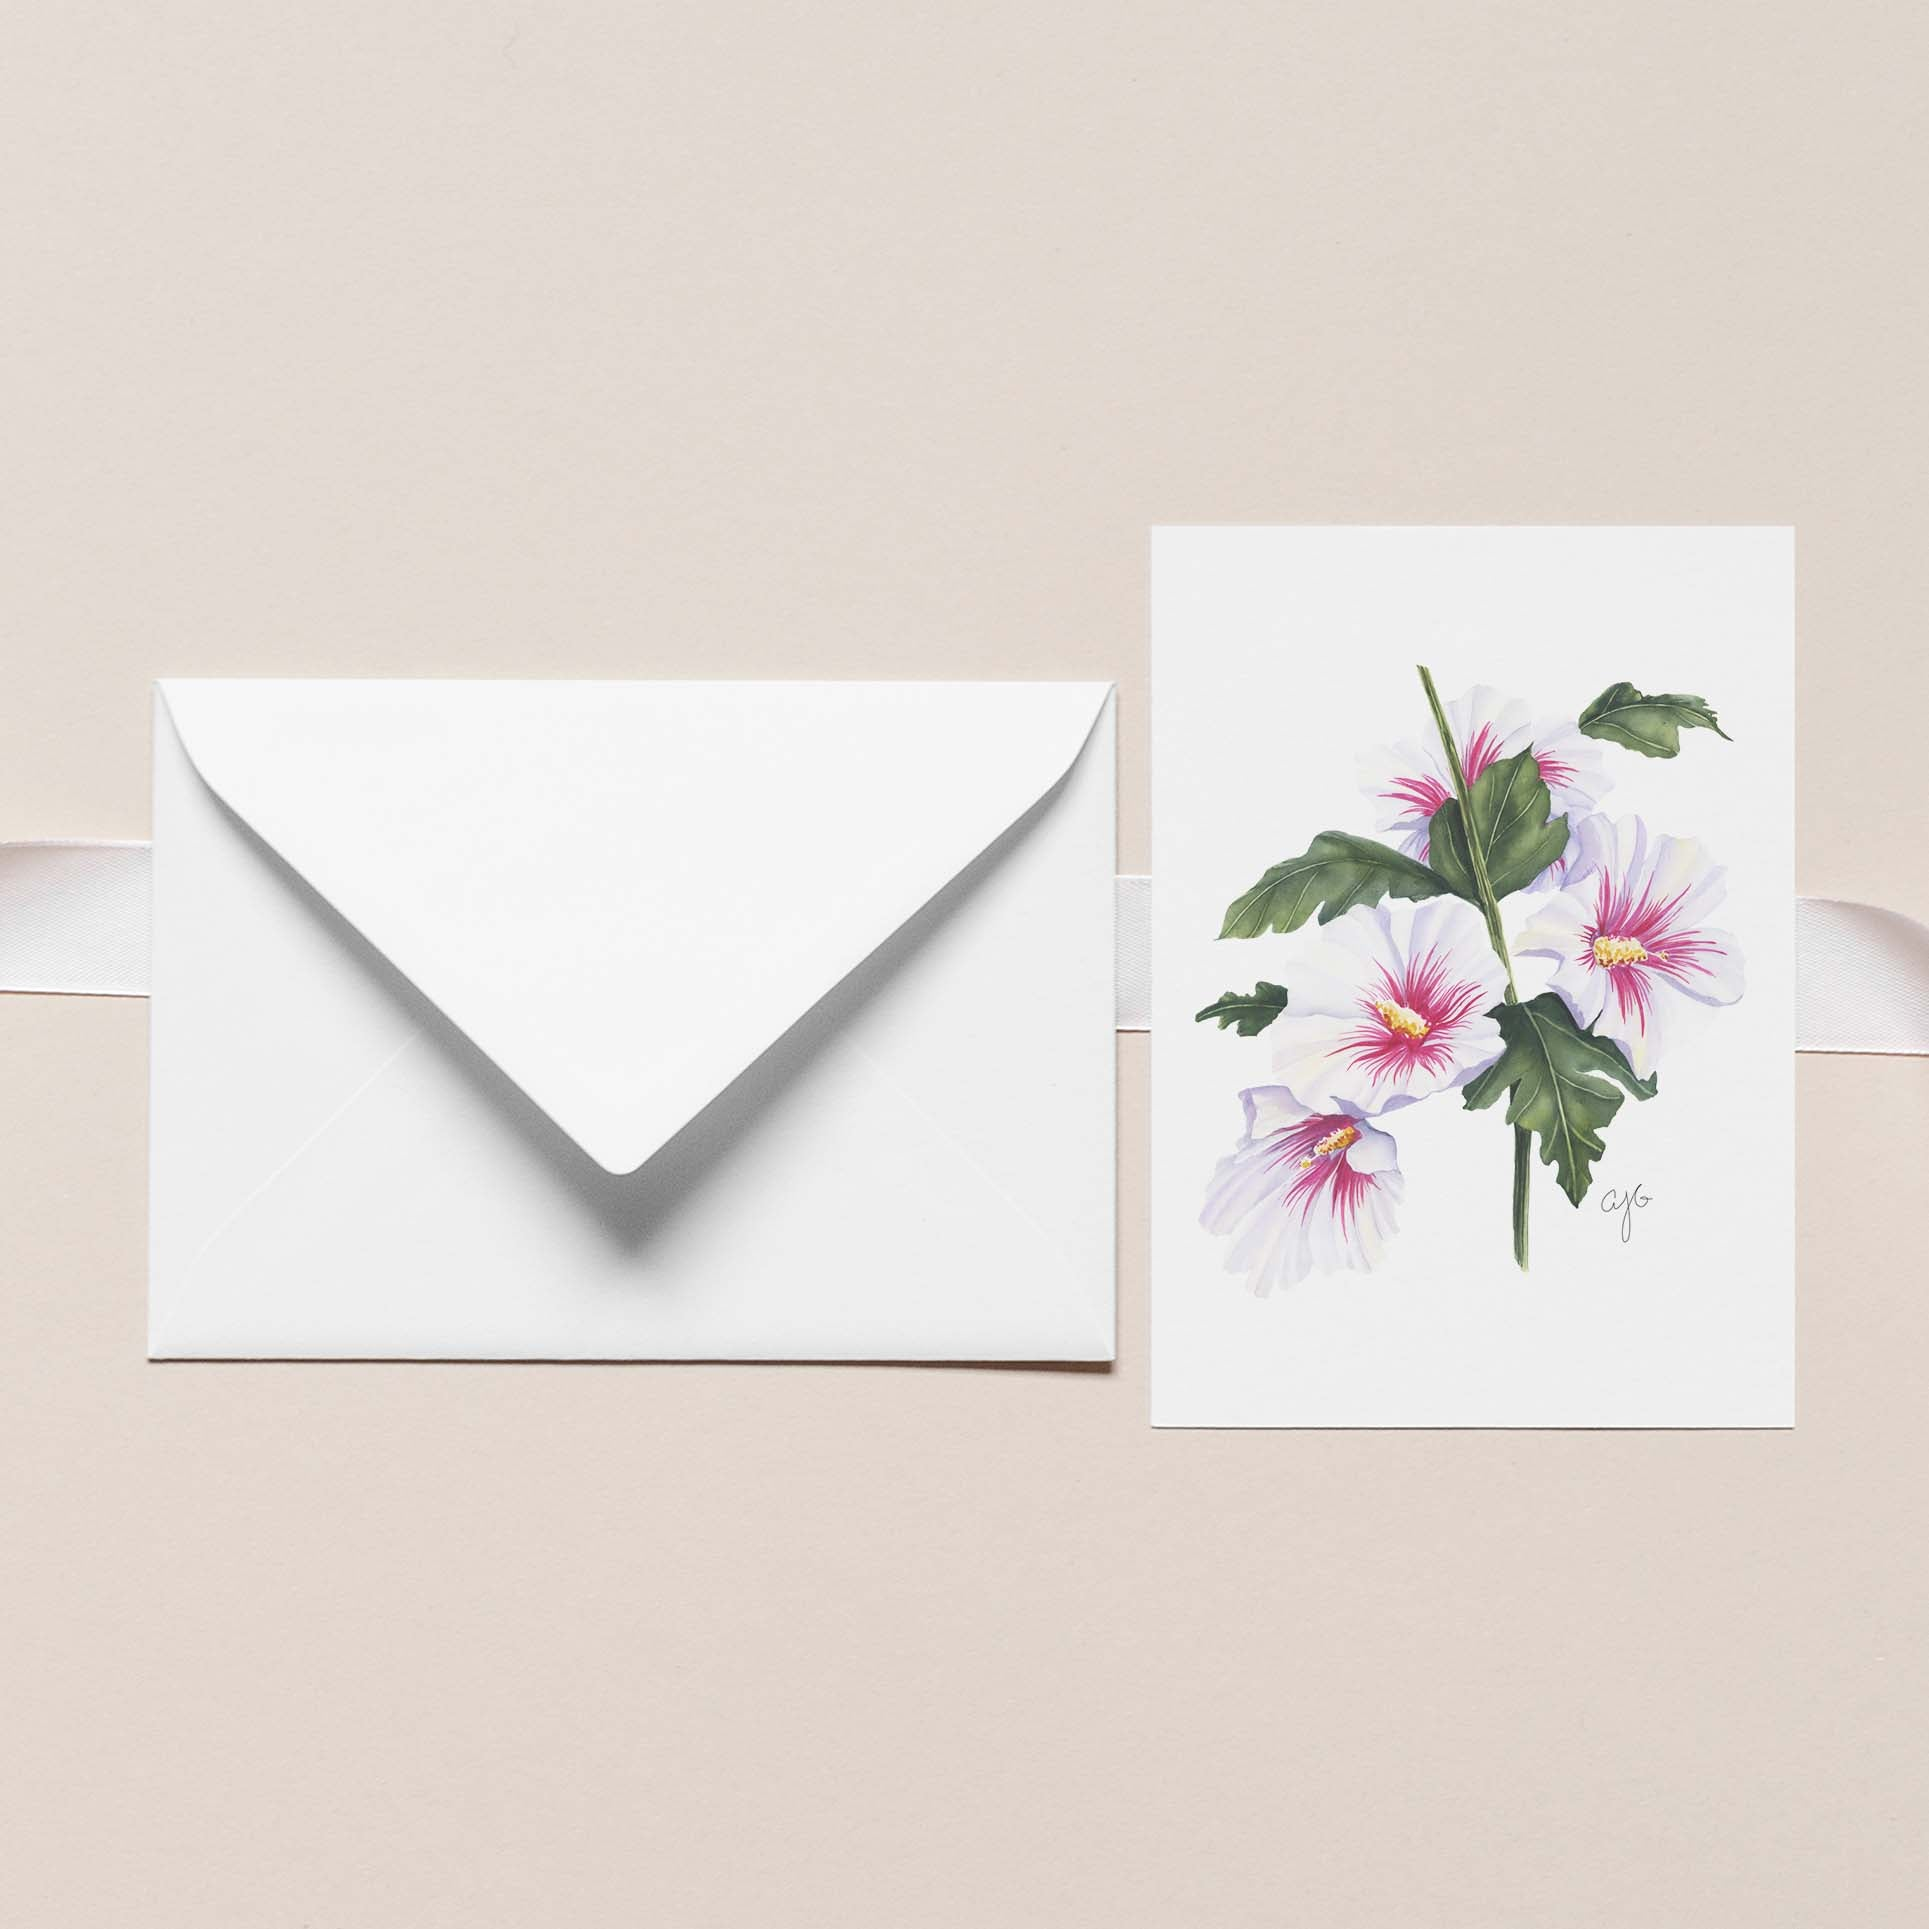 ROSE OF SHARON Botanical Note Card